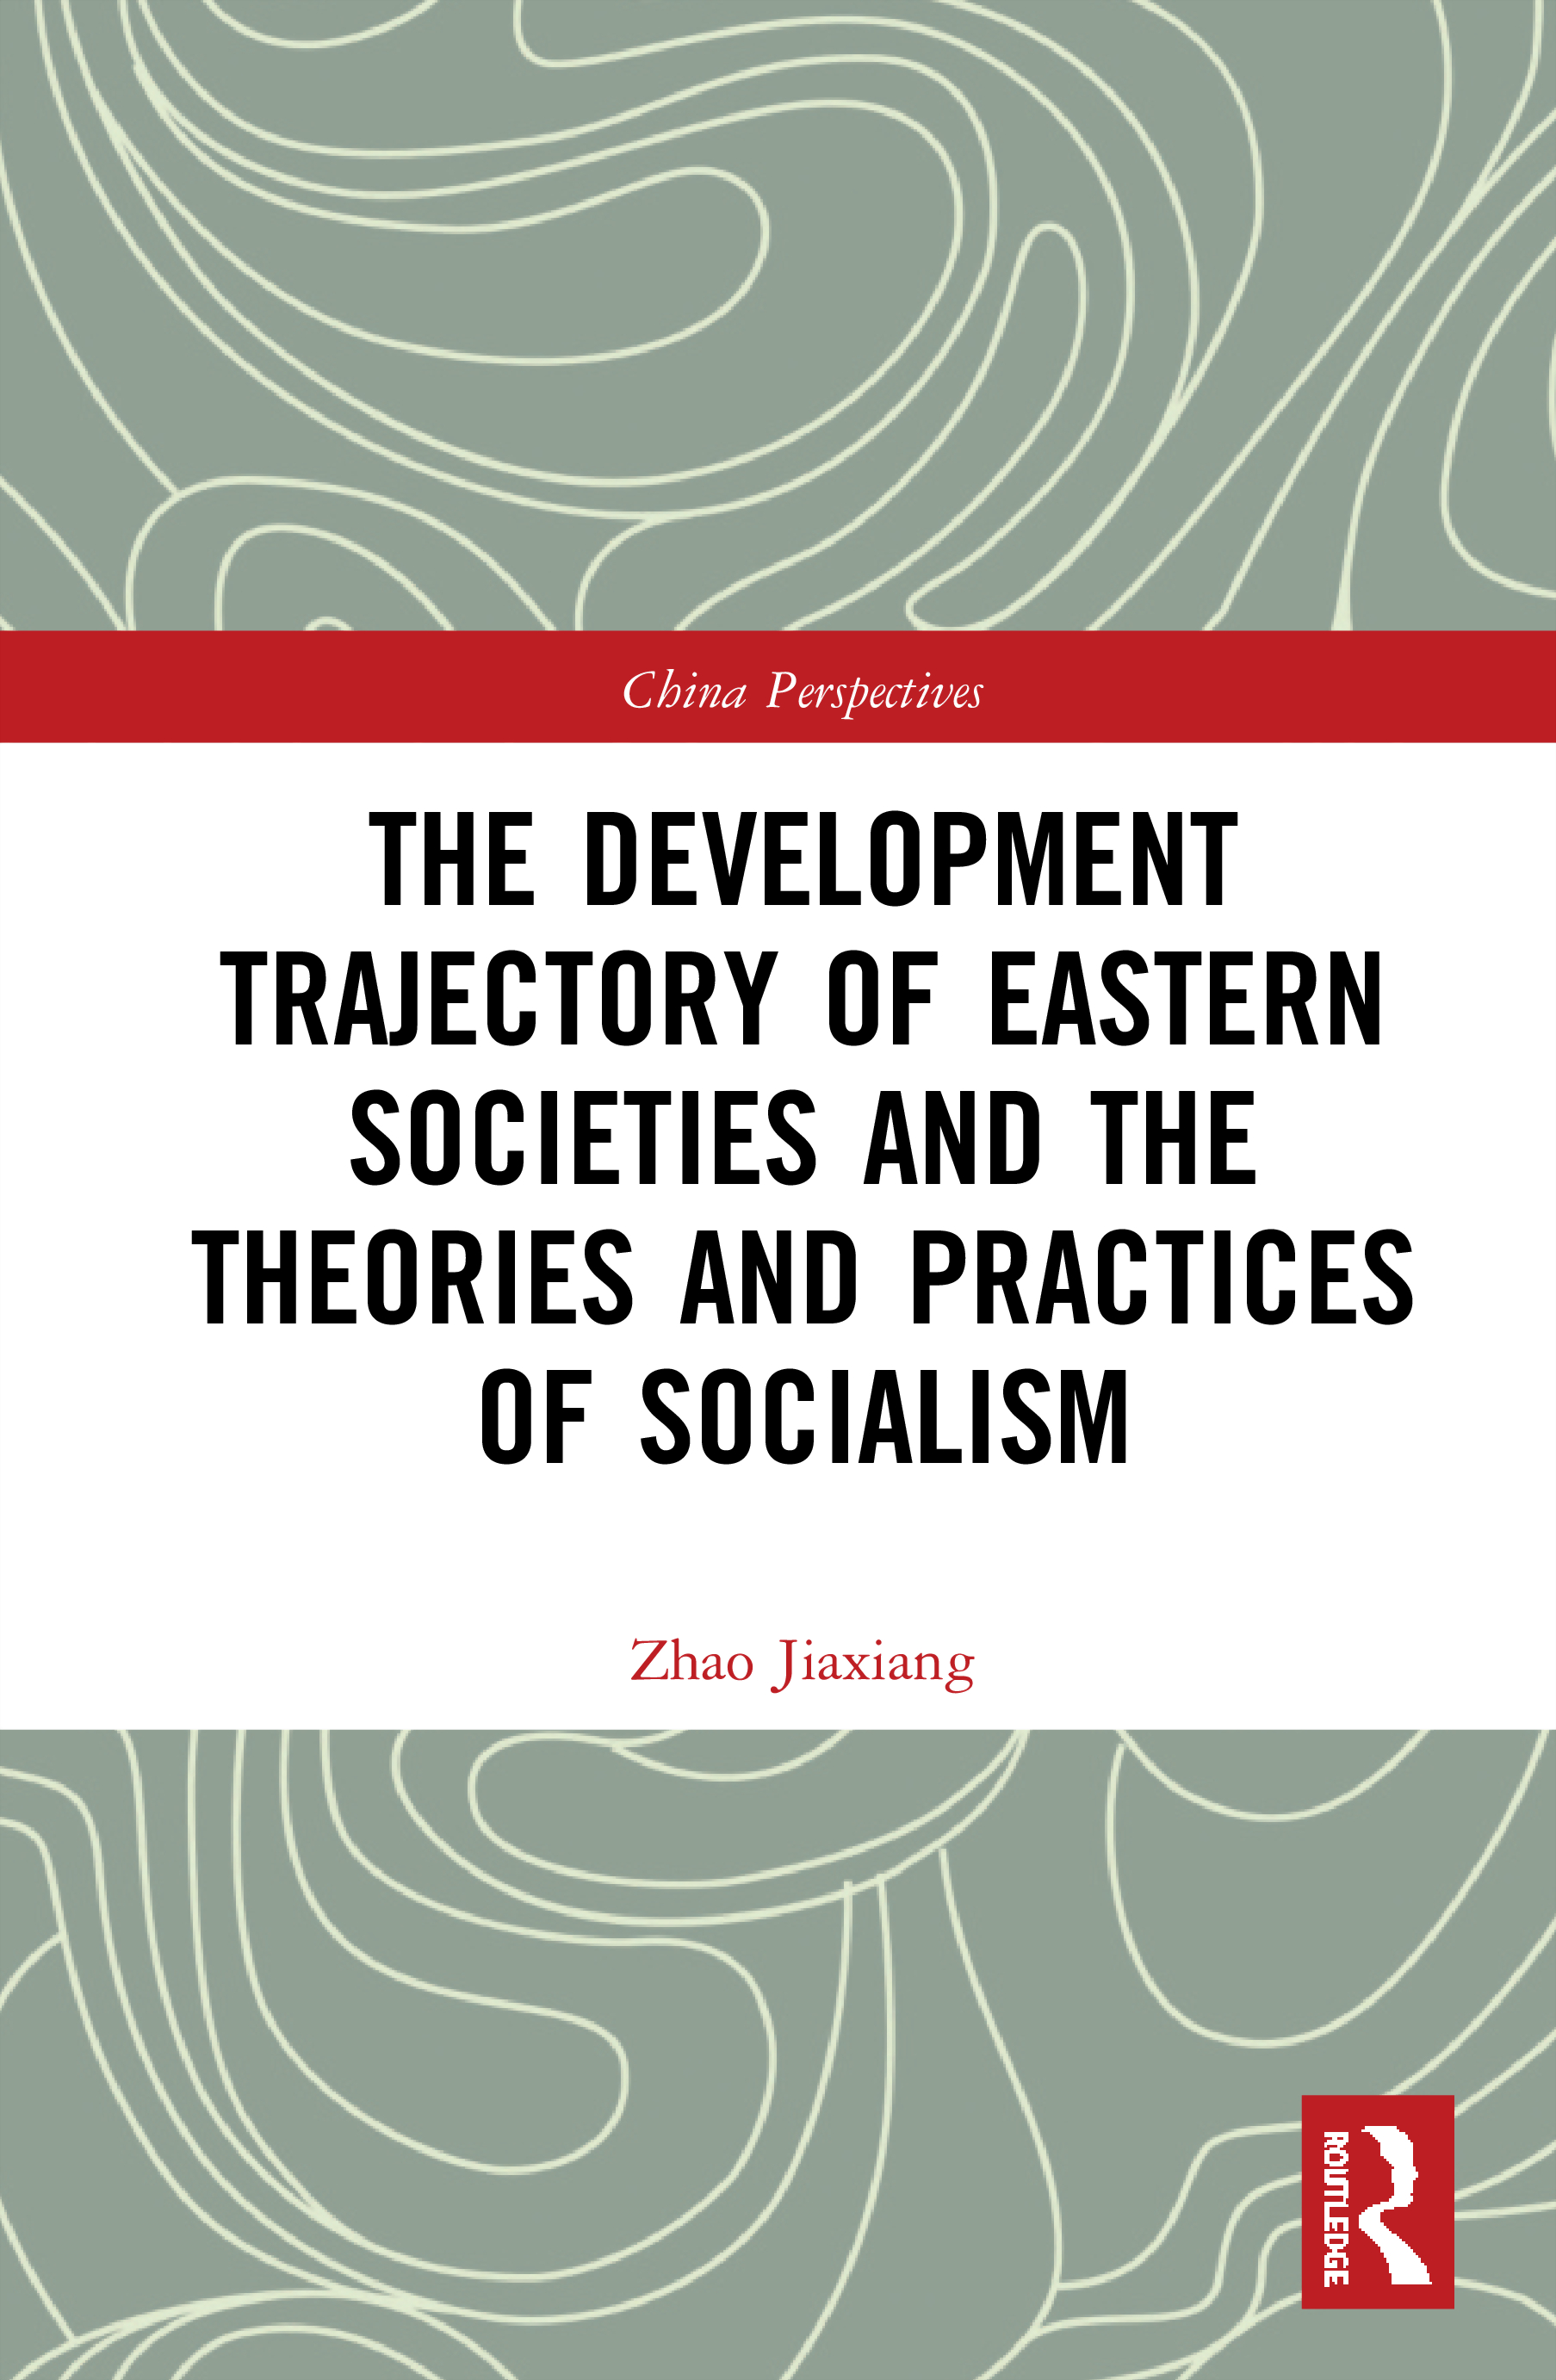 The Development Trajectory of Eastern Societies and the Theories and Practices of Socialism book cover